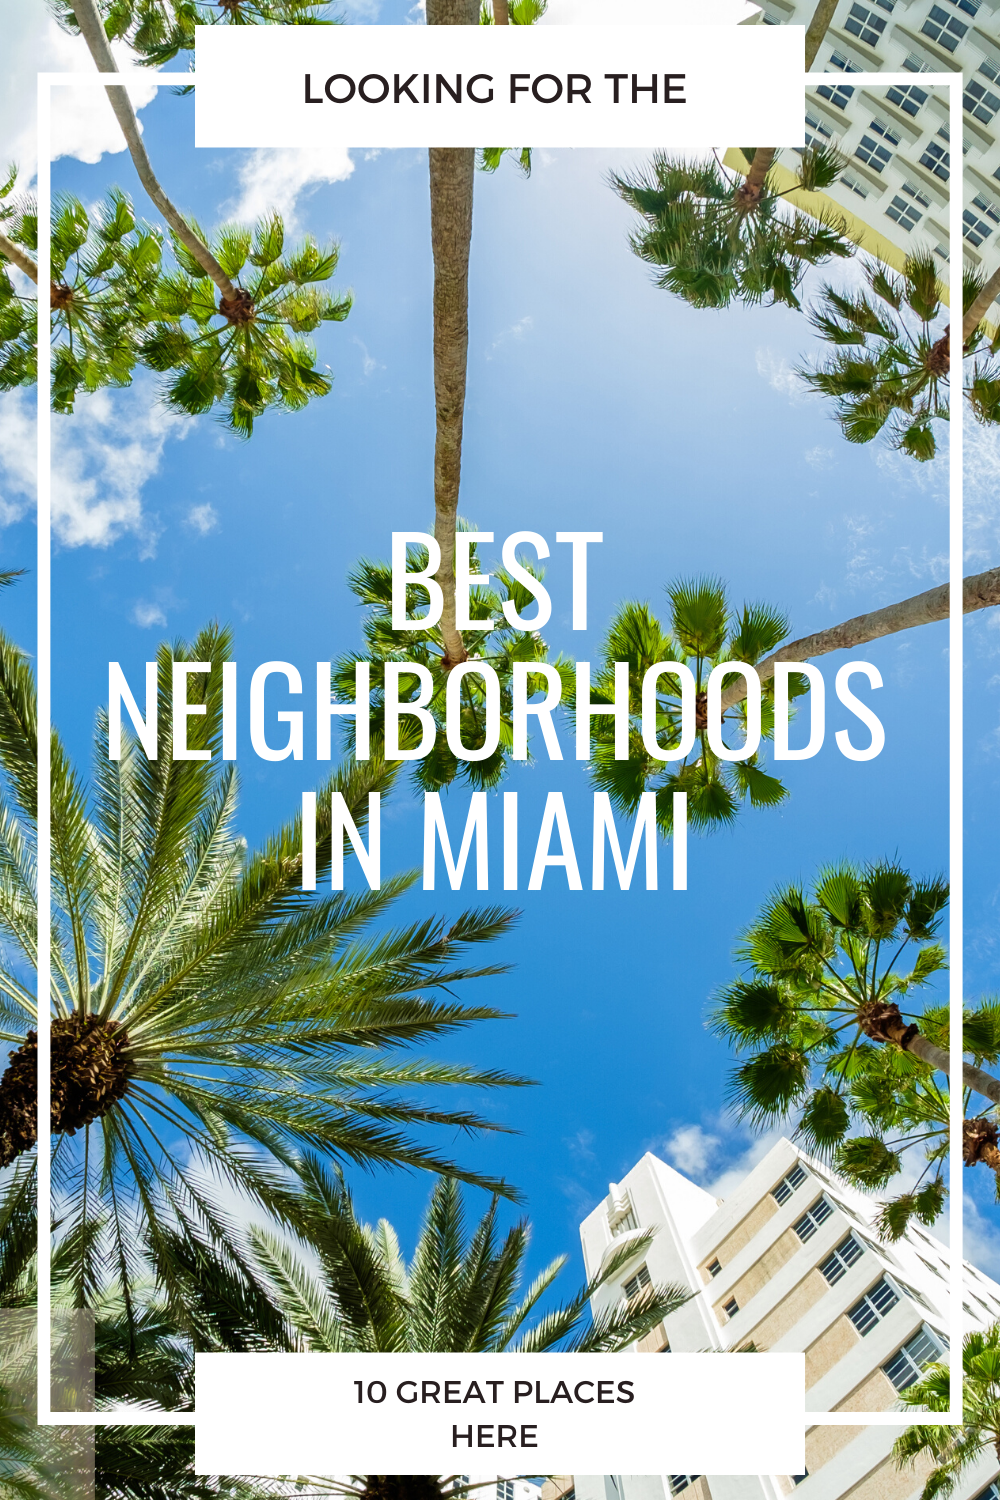 LOOKING FOR THE BEST NEIGHBORHOODS IN MIAMI? START WITH THESE 10 GREAT PLACES. #miamineighborhoods #miamiplacestolive #miamiliving